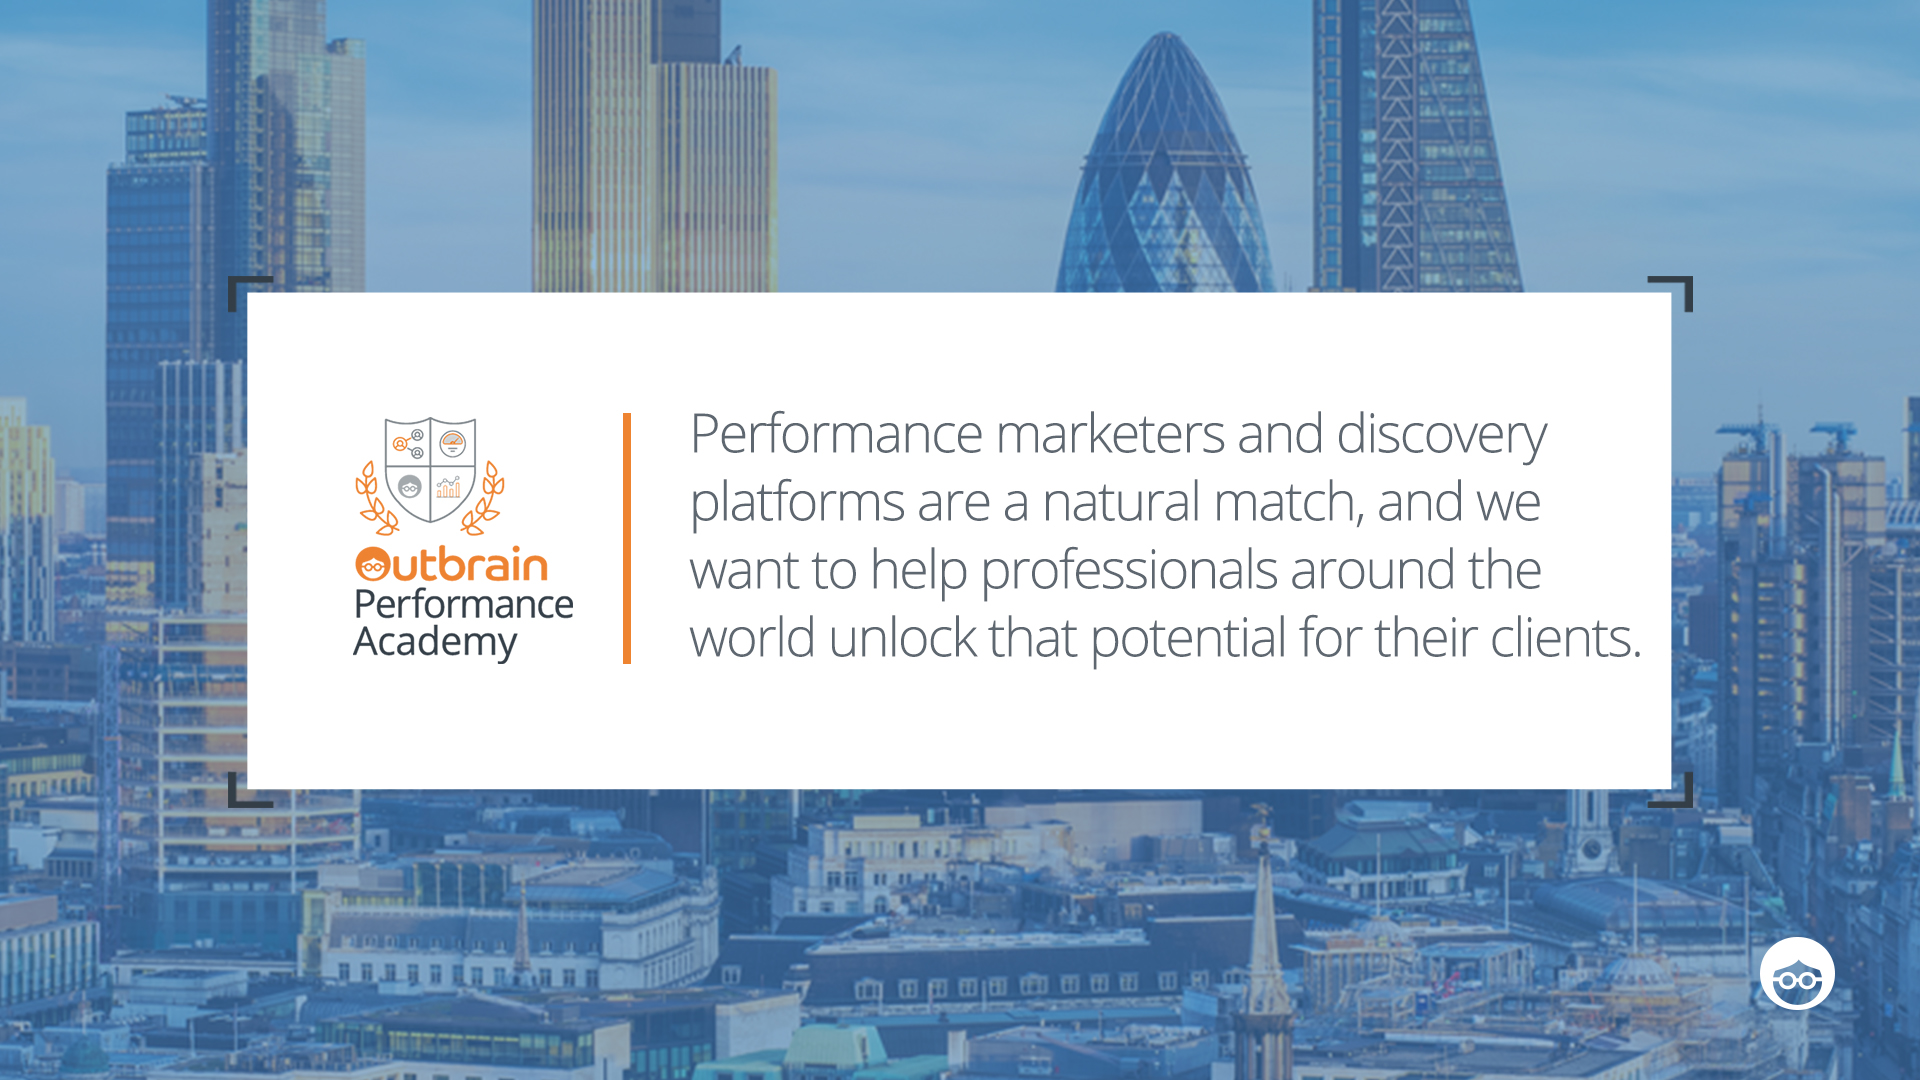 Outbrain Performance Academy Rolls out in the UK